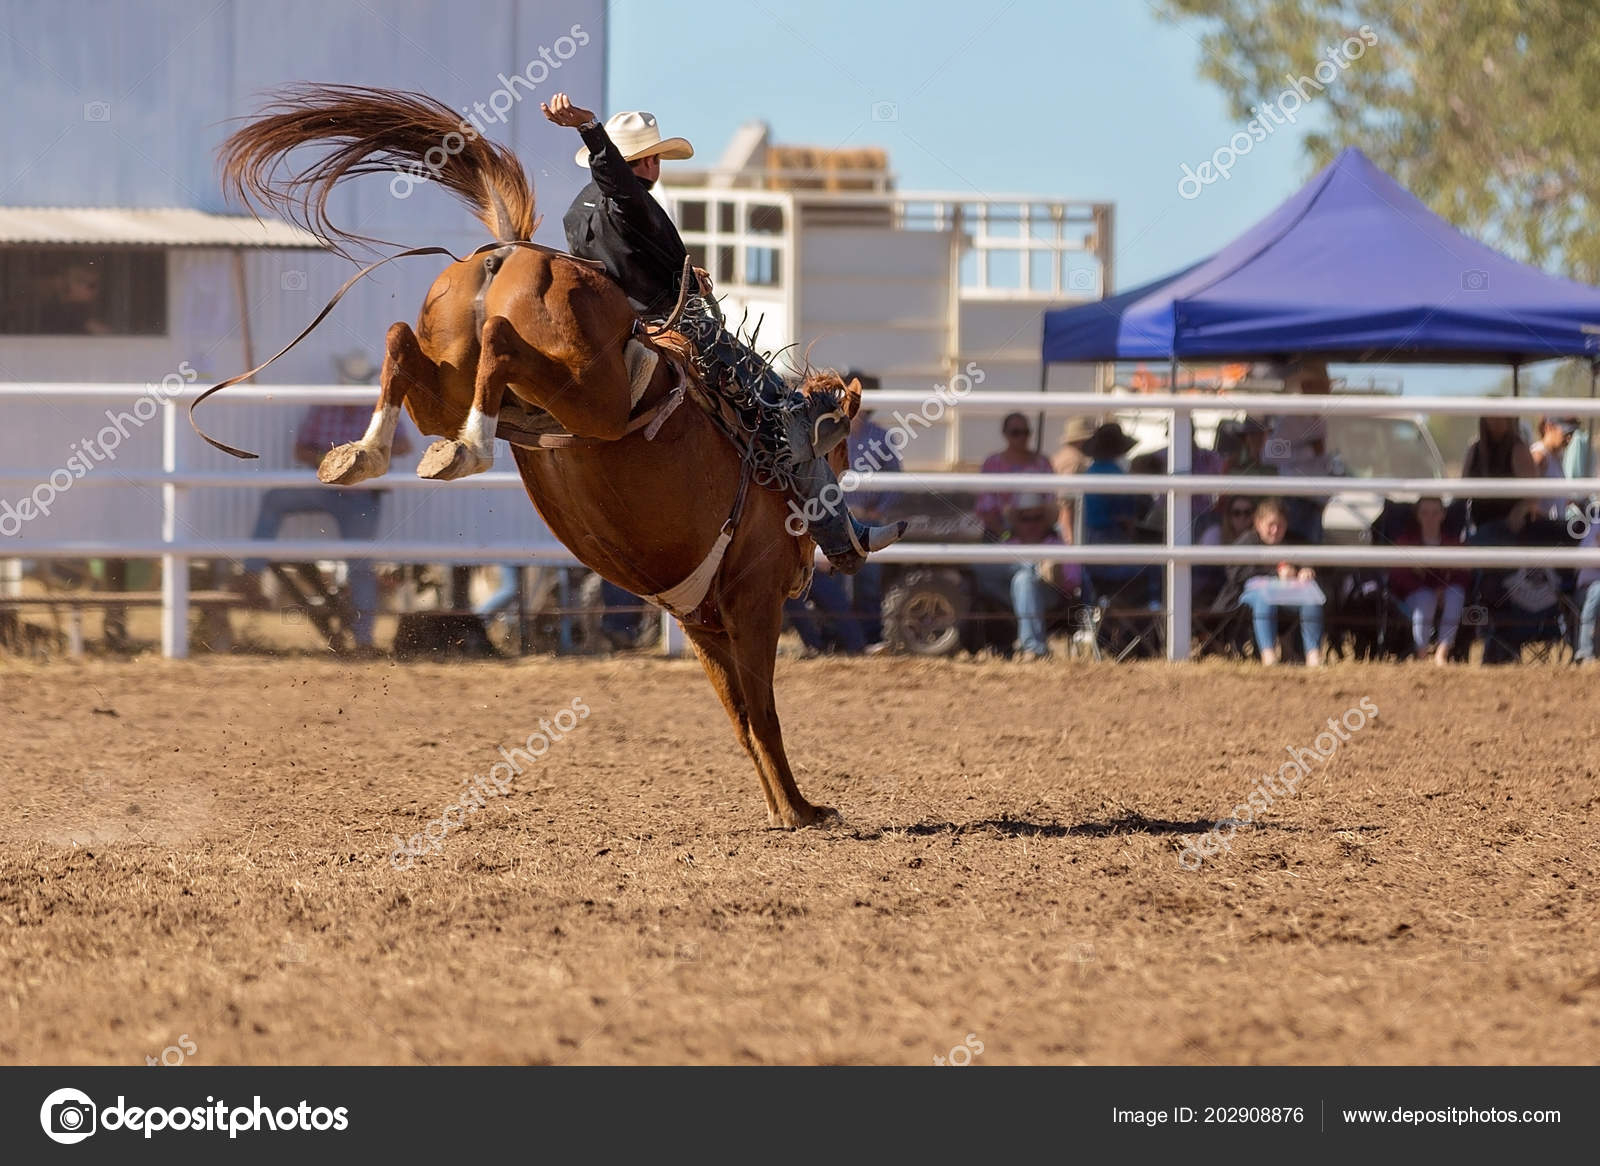 Cowboy riding a bucking bronco horse in a competition at a country rodeo photo by jacksonstockphotography